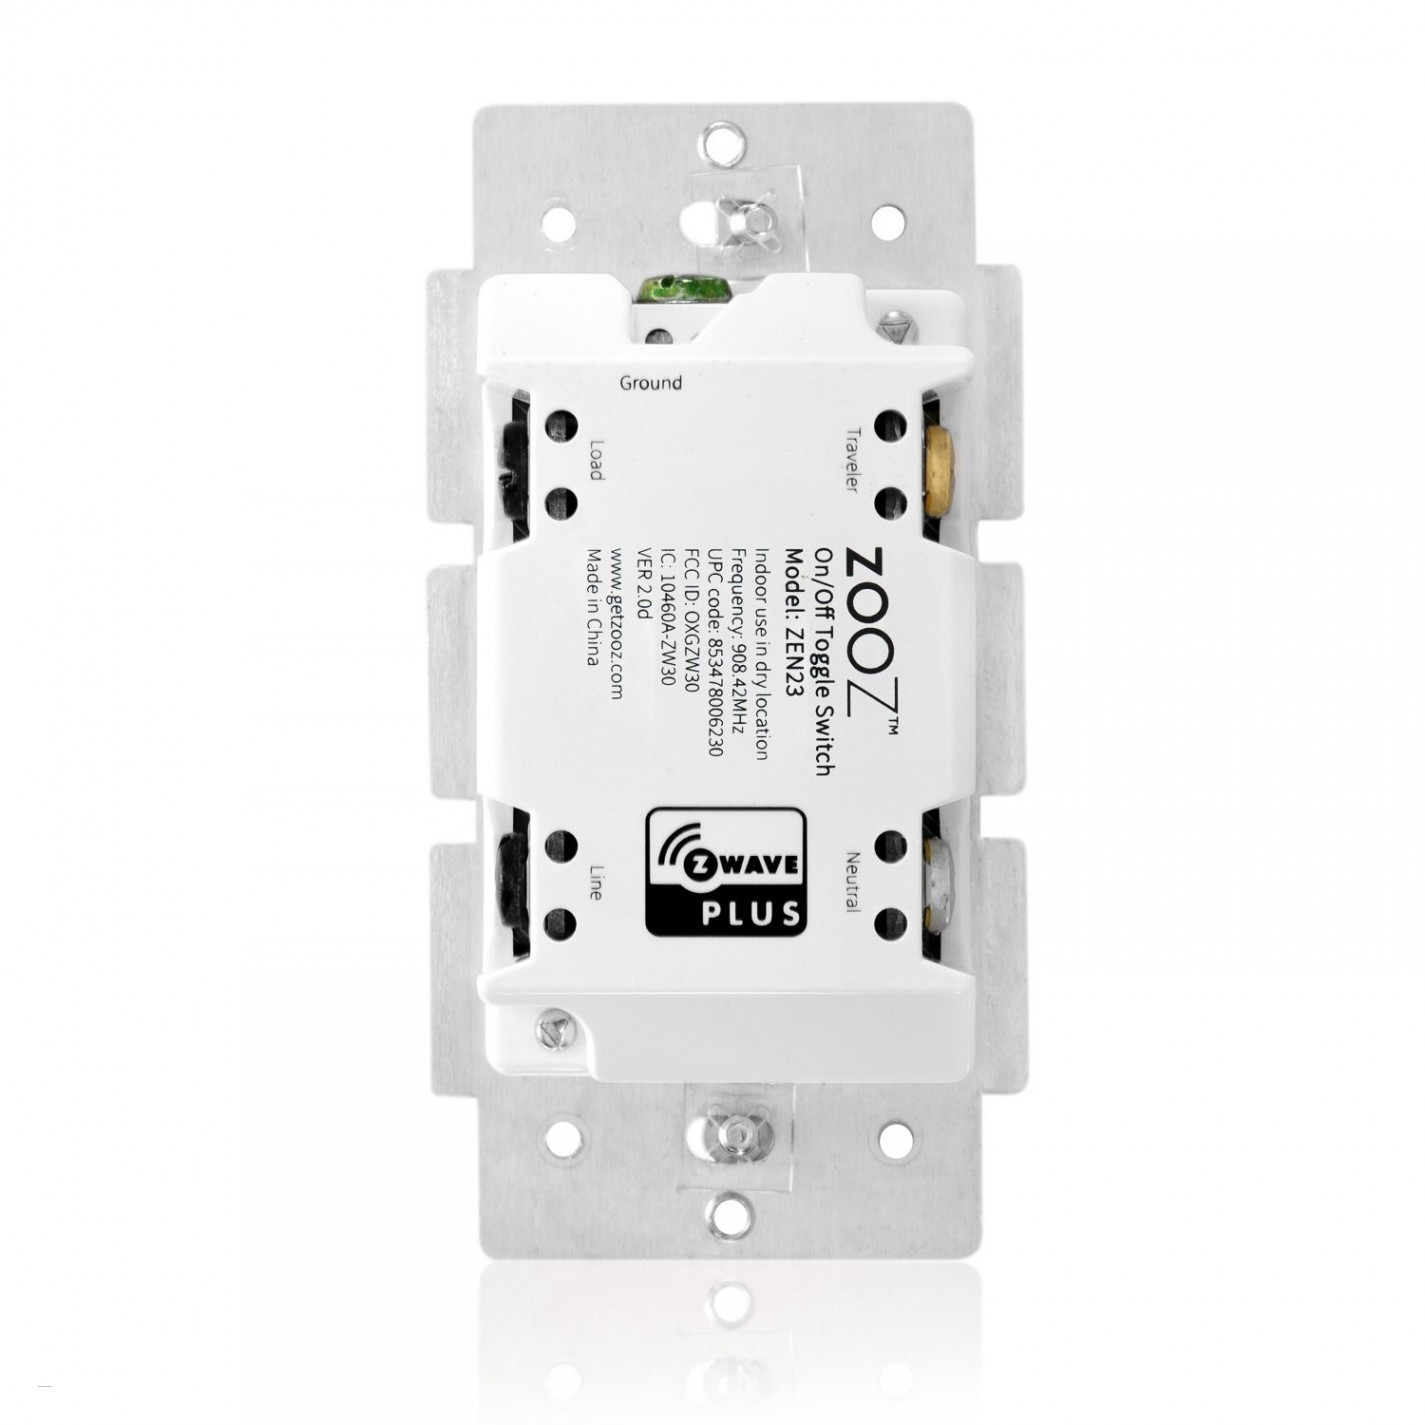 Wiring Diagram Switch Light New Wiring Diagram 3 Way Light Switch Best Wiring Diagram for